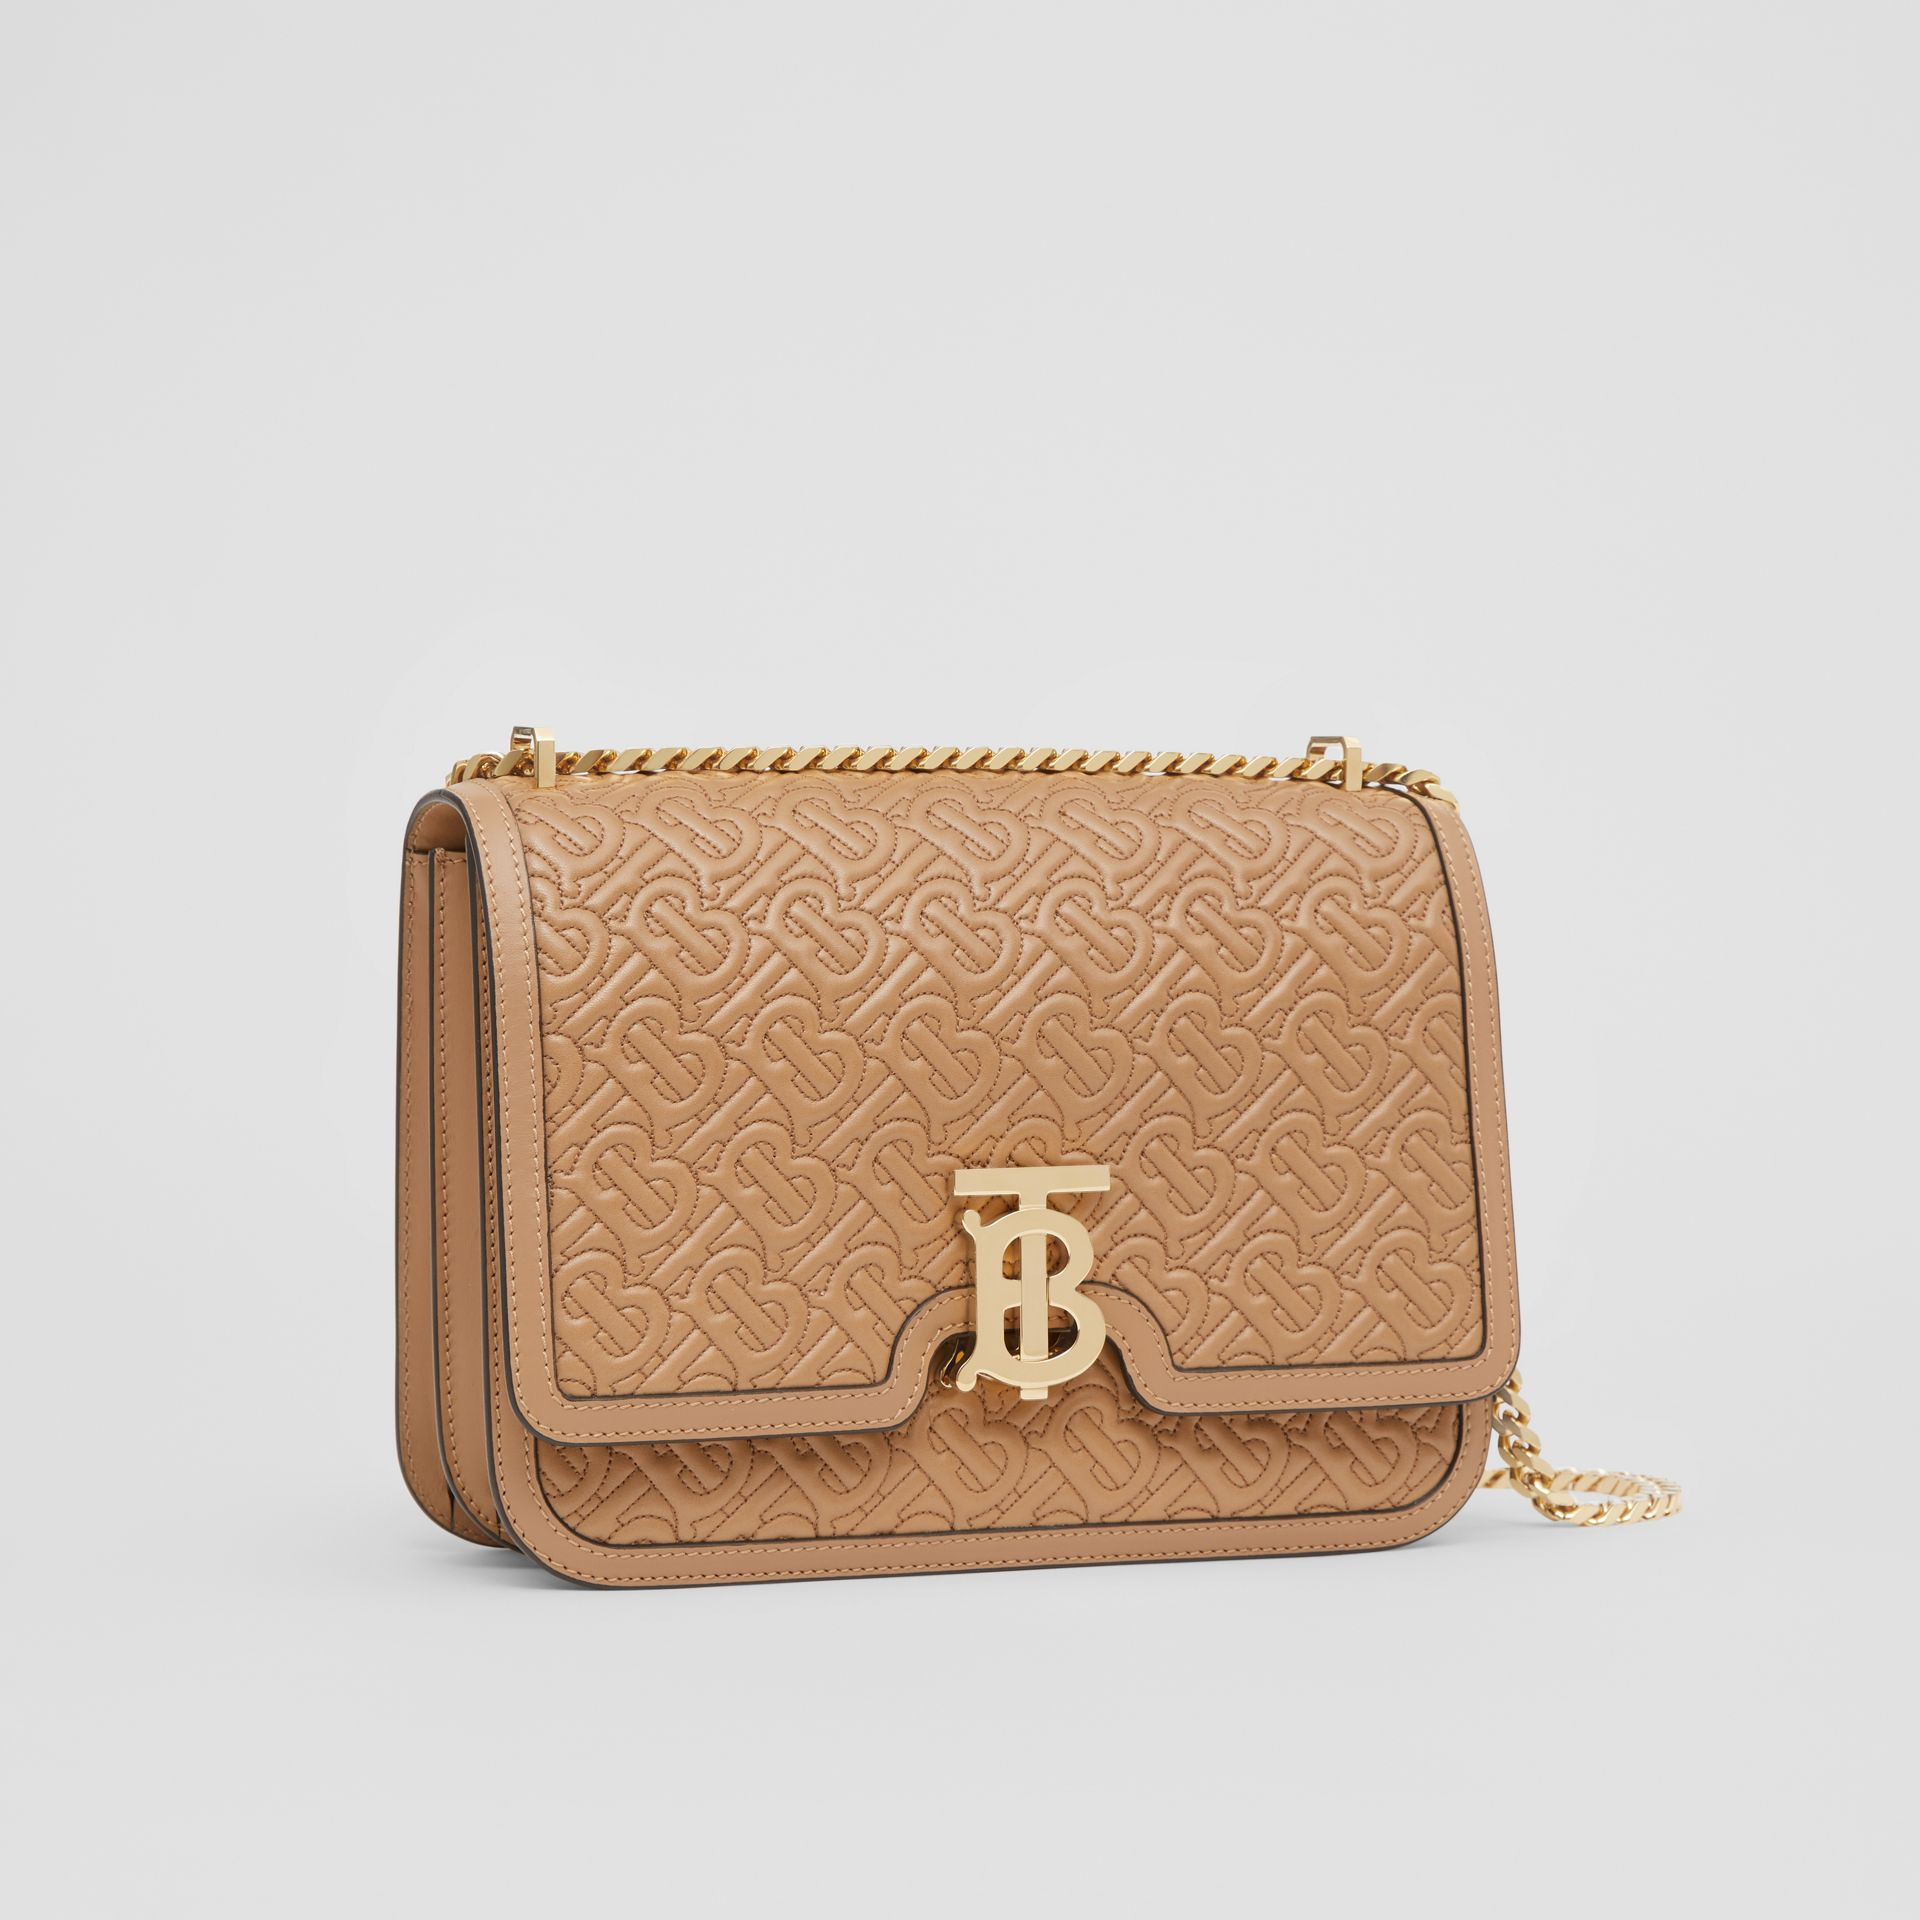 Medium Quilted Monogram Lambskin TB Bag in Honey - Women | Burberry Hong Kong S.A.R. - gallery image 6